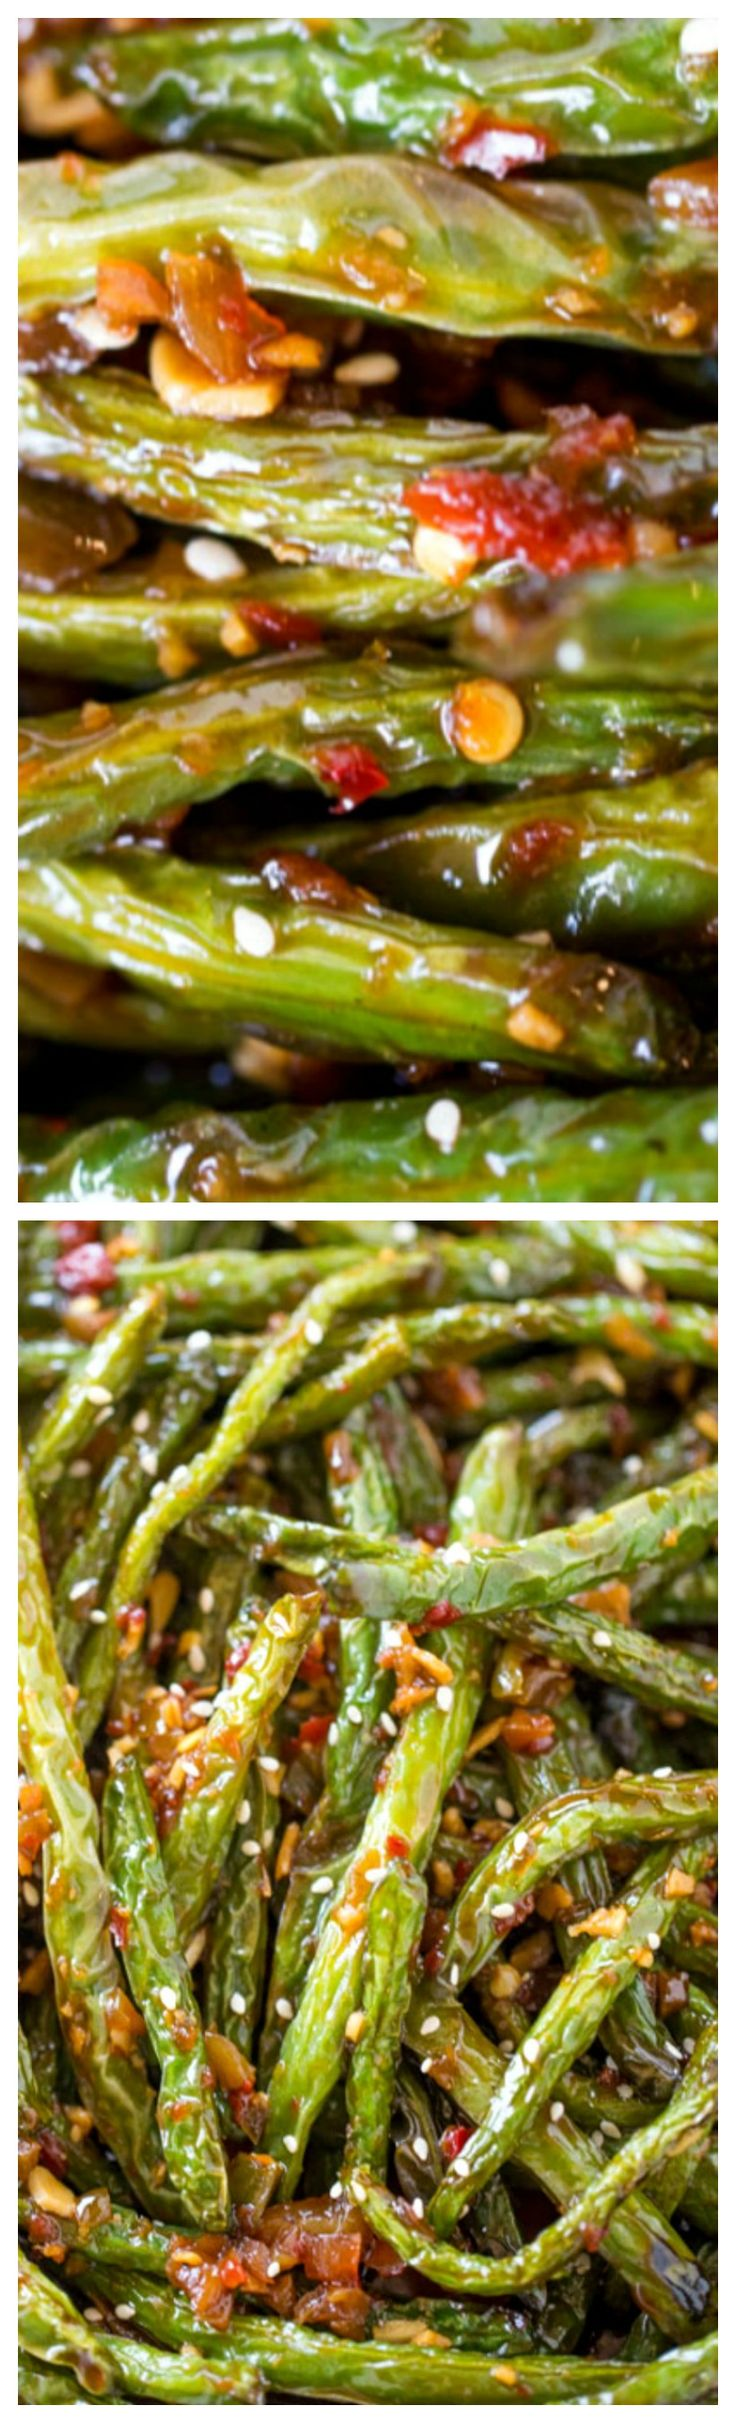 Spicy Chinese Sichuan Green Beans ~ The perfect easy side dish to your favorite Chinese meal and they're a breeze to make with just a few ingredients.